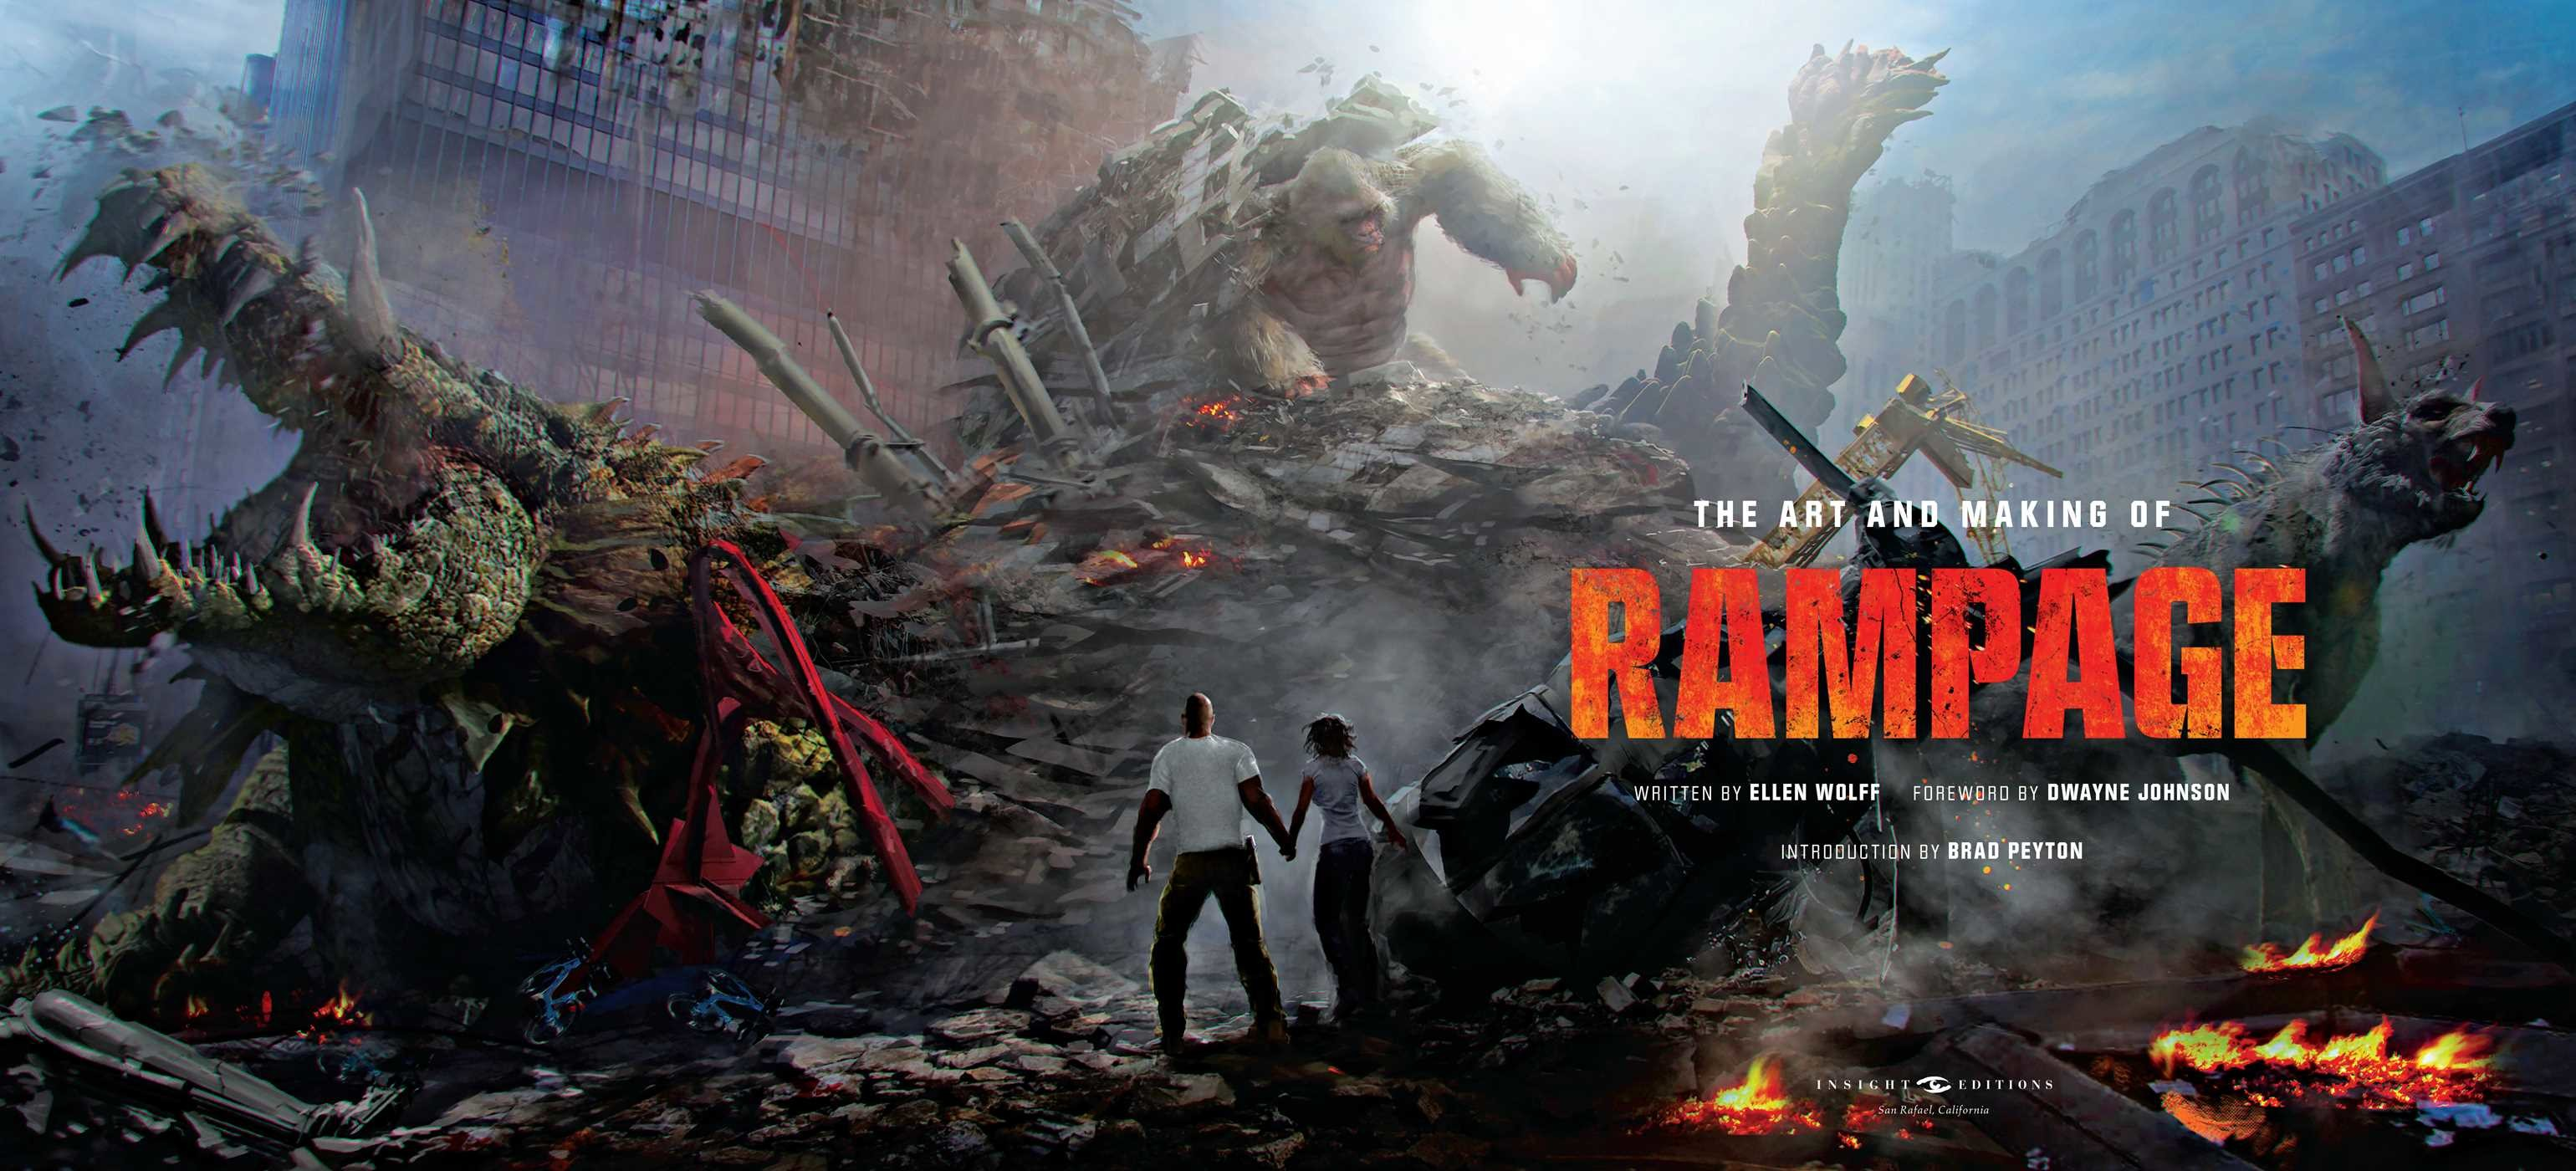 The art and making of rampage book by ellen wolff brad peyton the art and making of rampage 978168383210201 fandeluxe Gallery